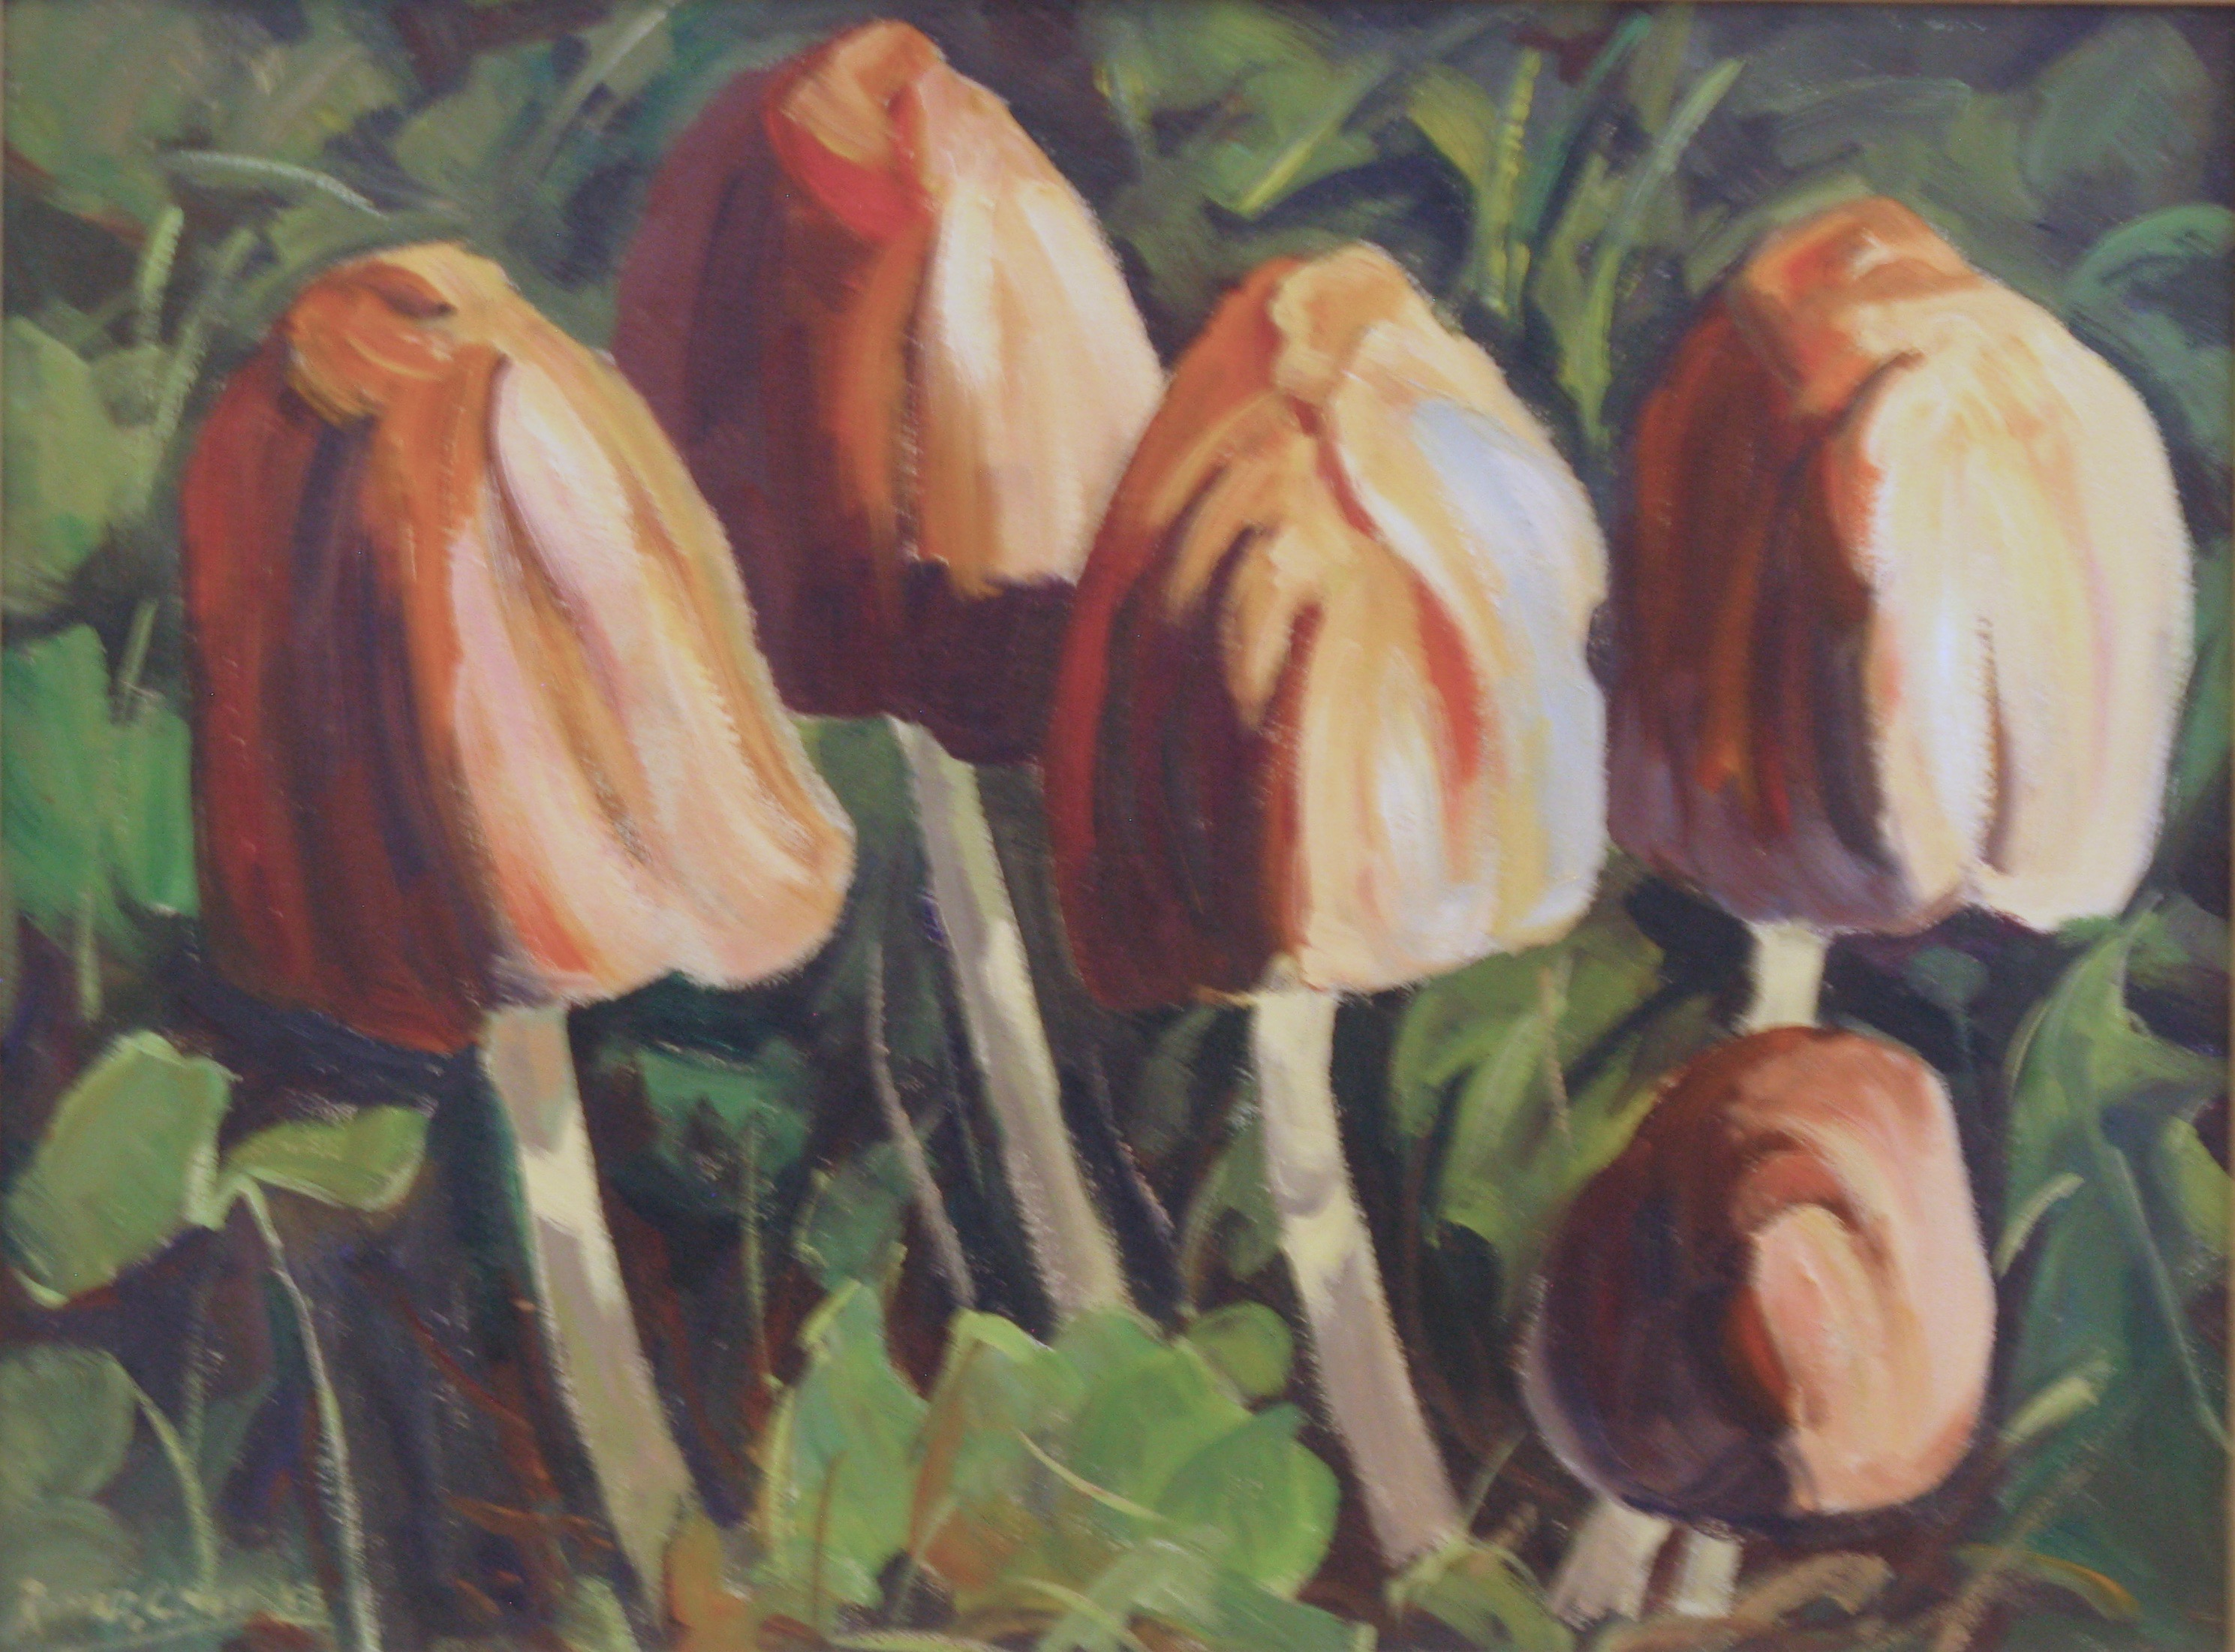 Mushrooms by Ronald C Bell